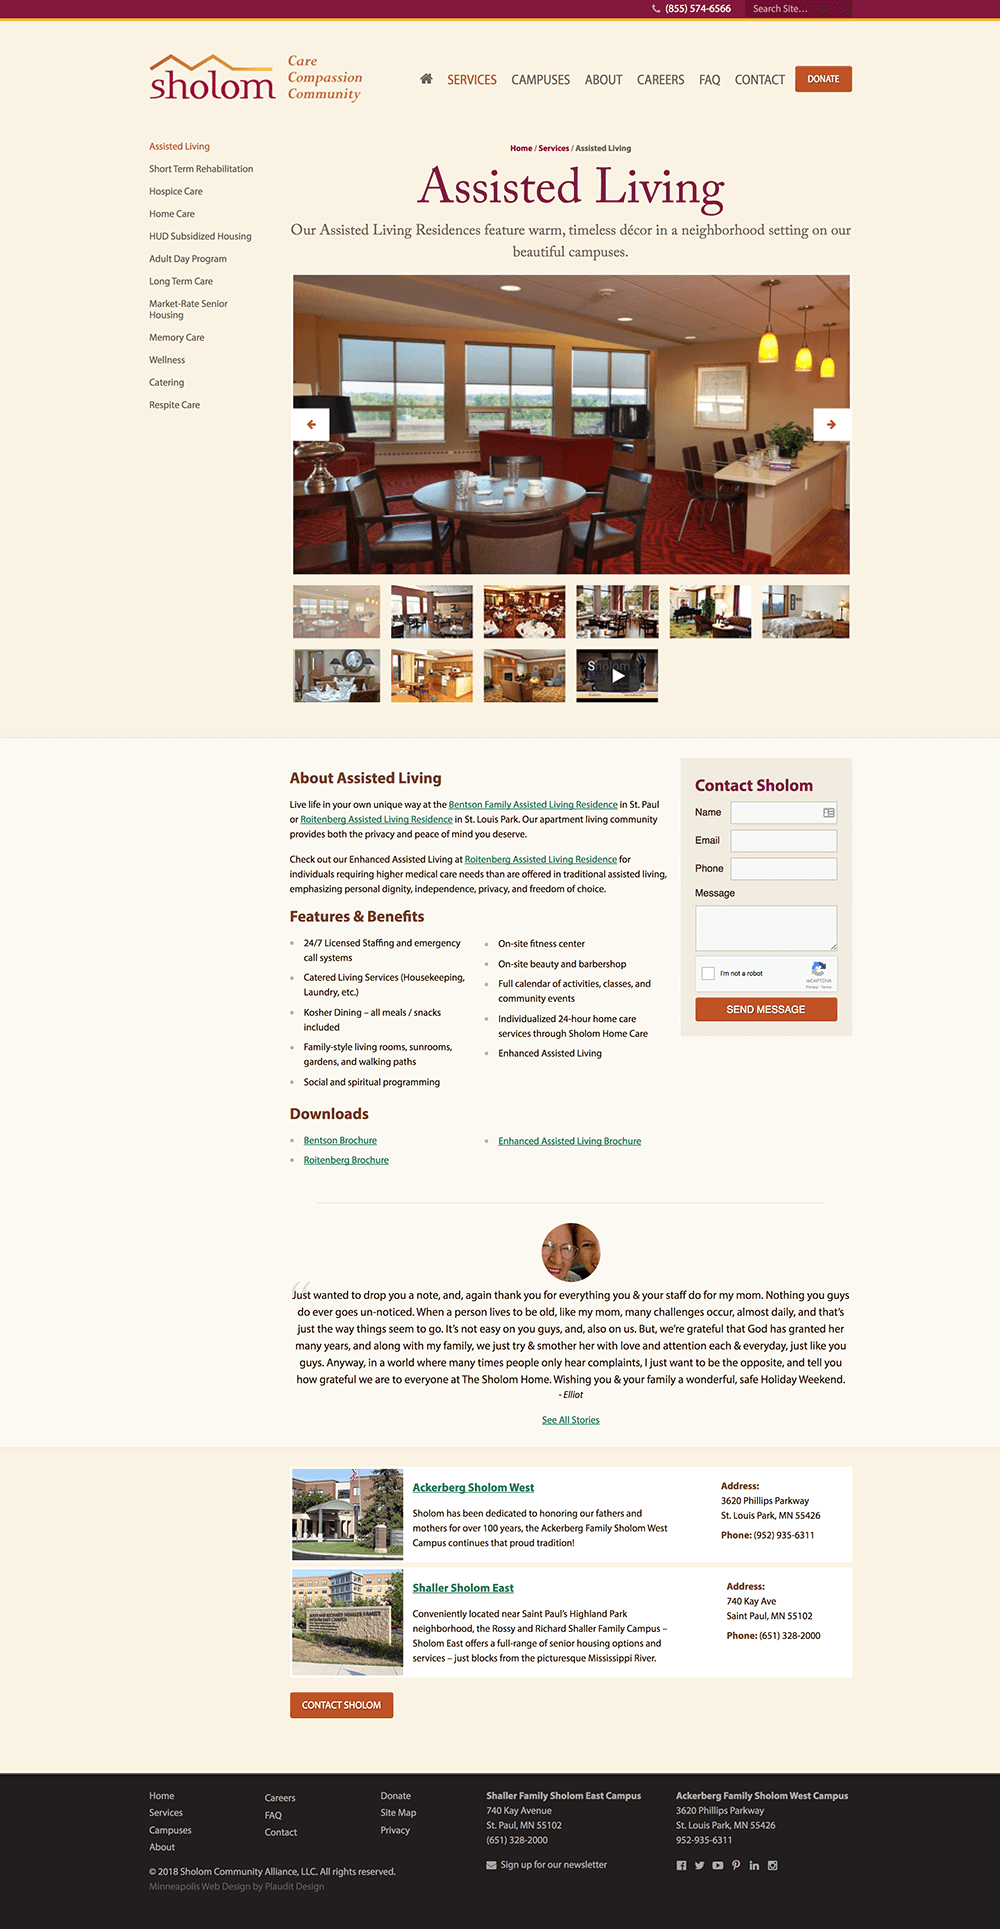 Assisted Living web page design